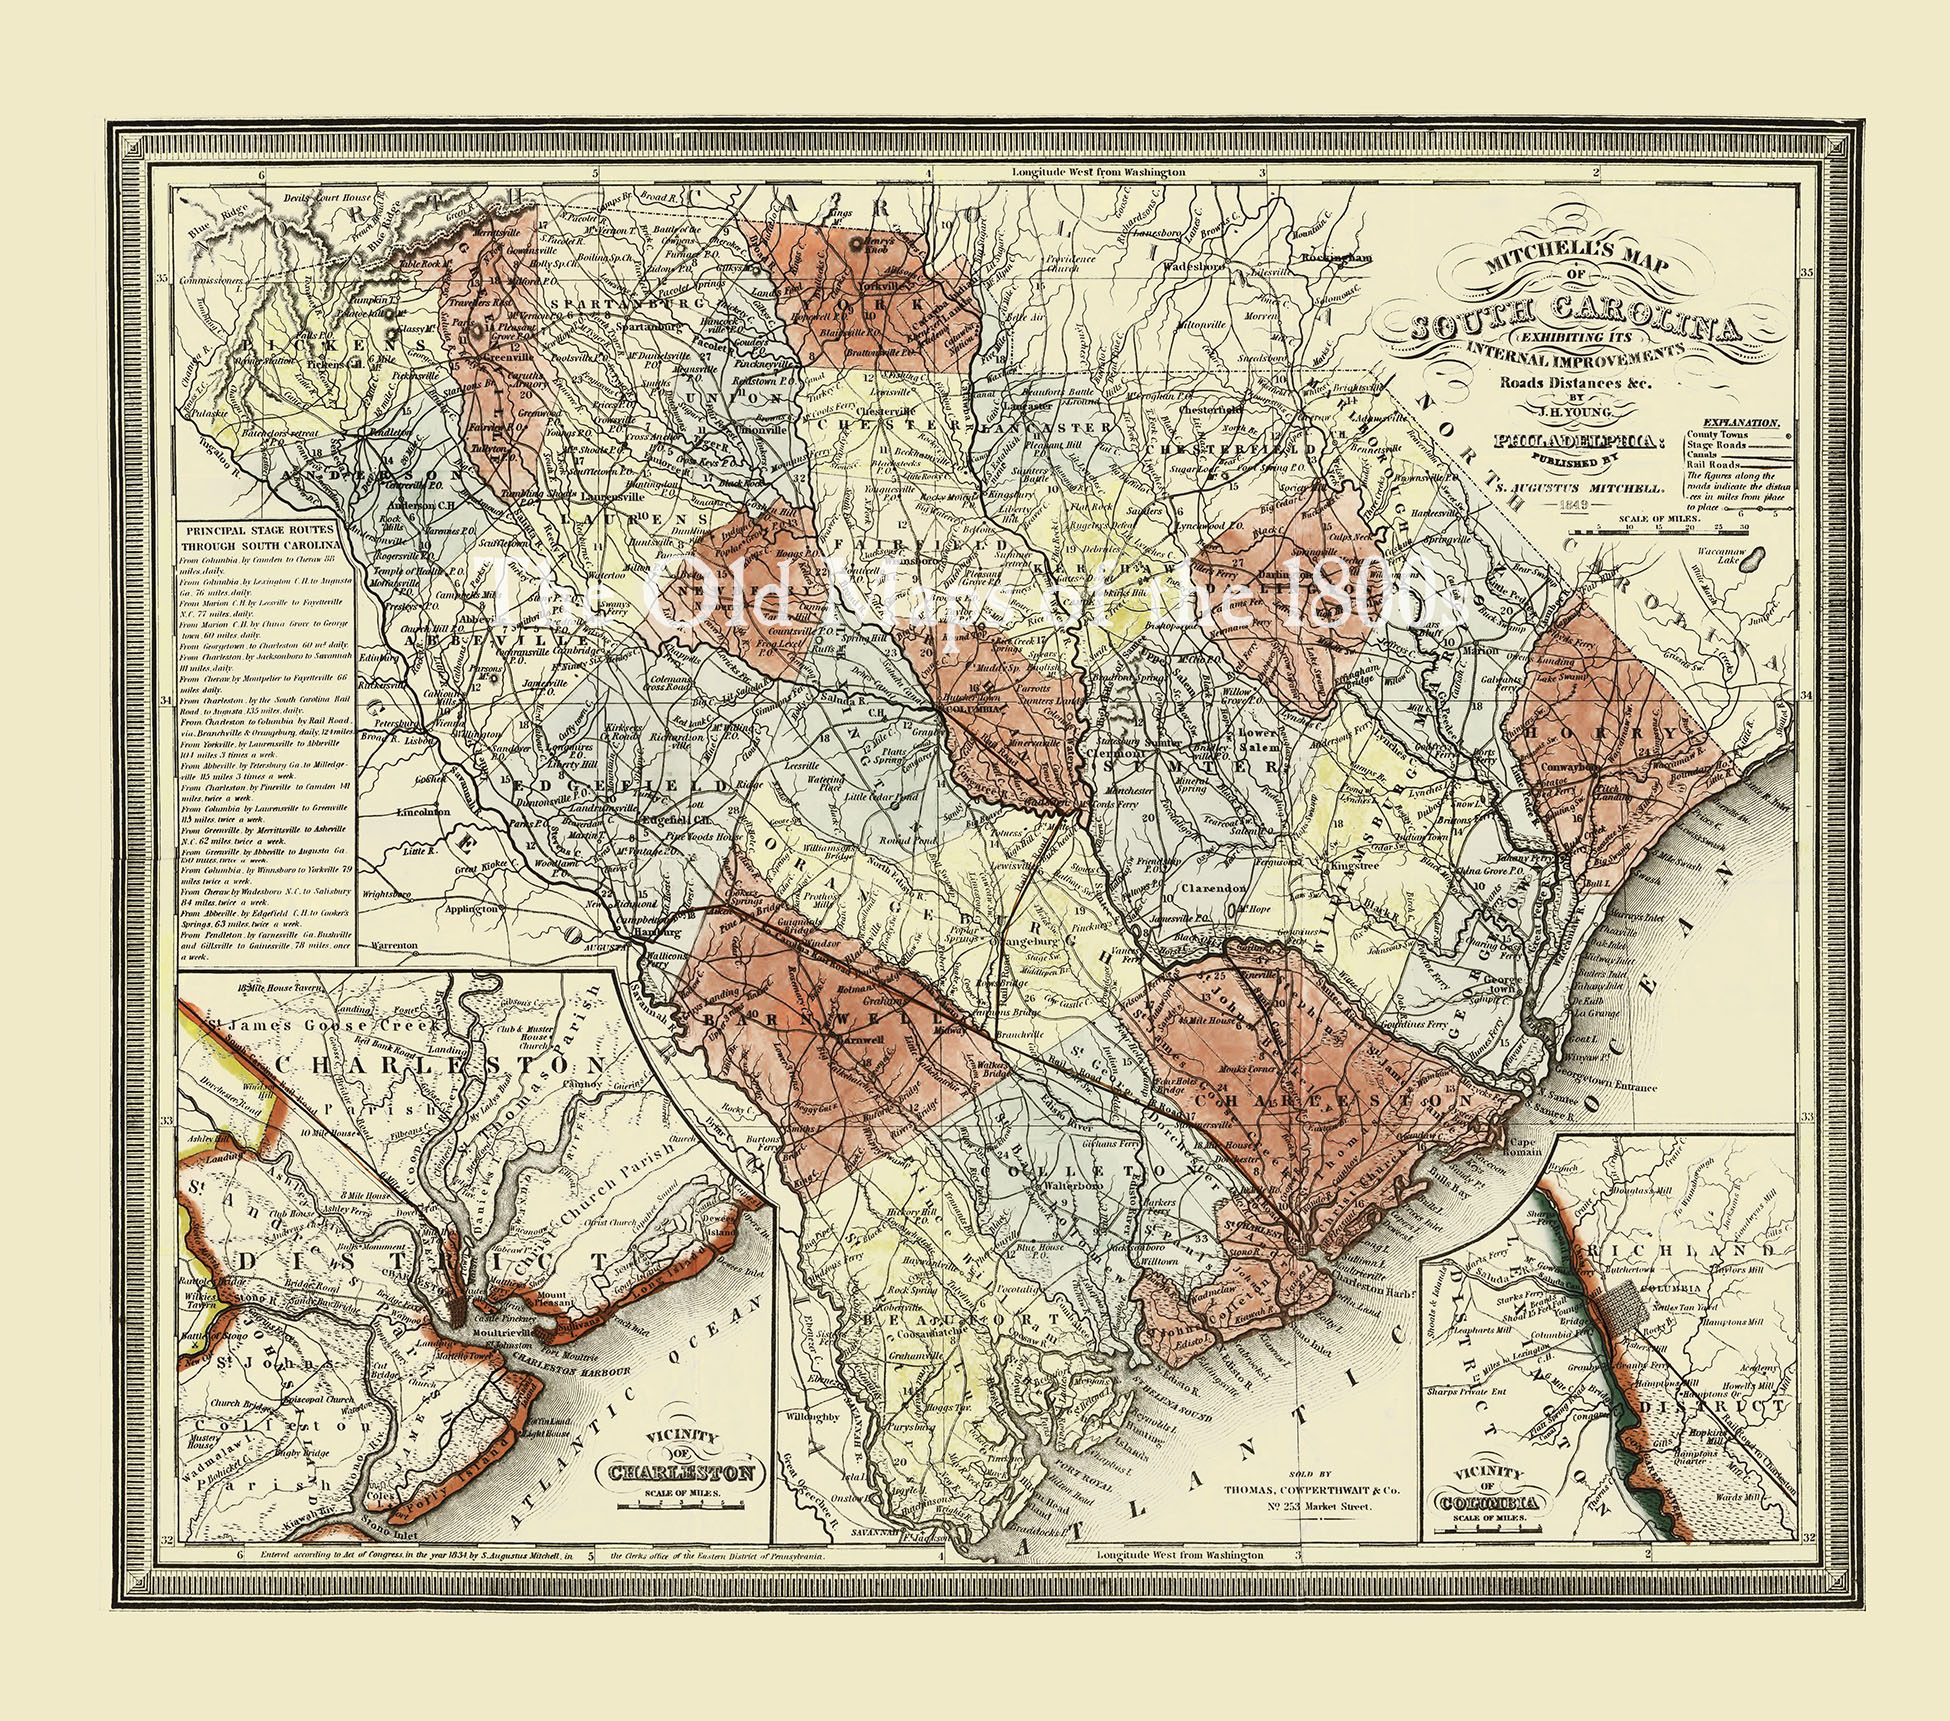 Mitchell's South Carolina in 1849 - State Map, Restoration, Vintage,  Antique, Fine Art, Wall Art, History from The Old Maps of the 1800s